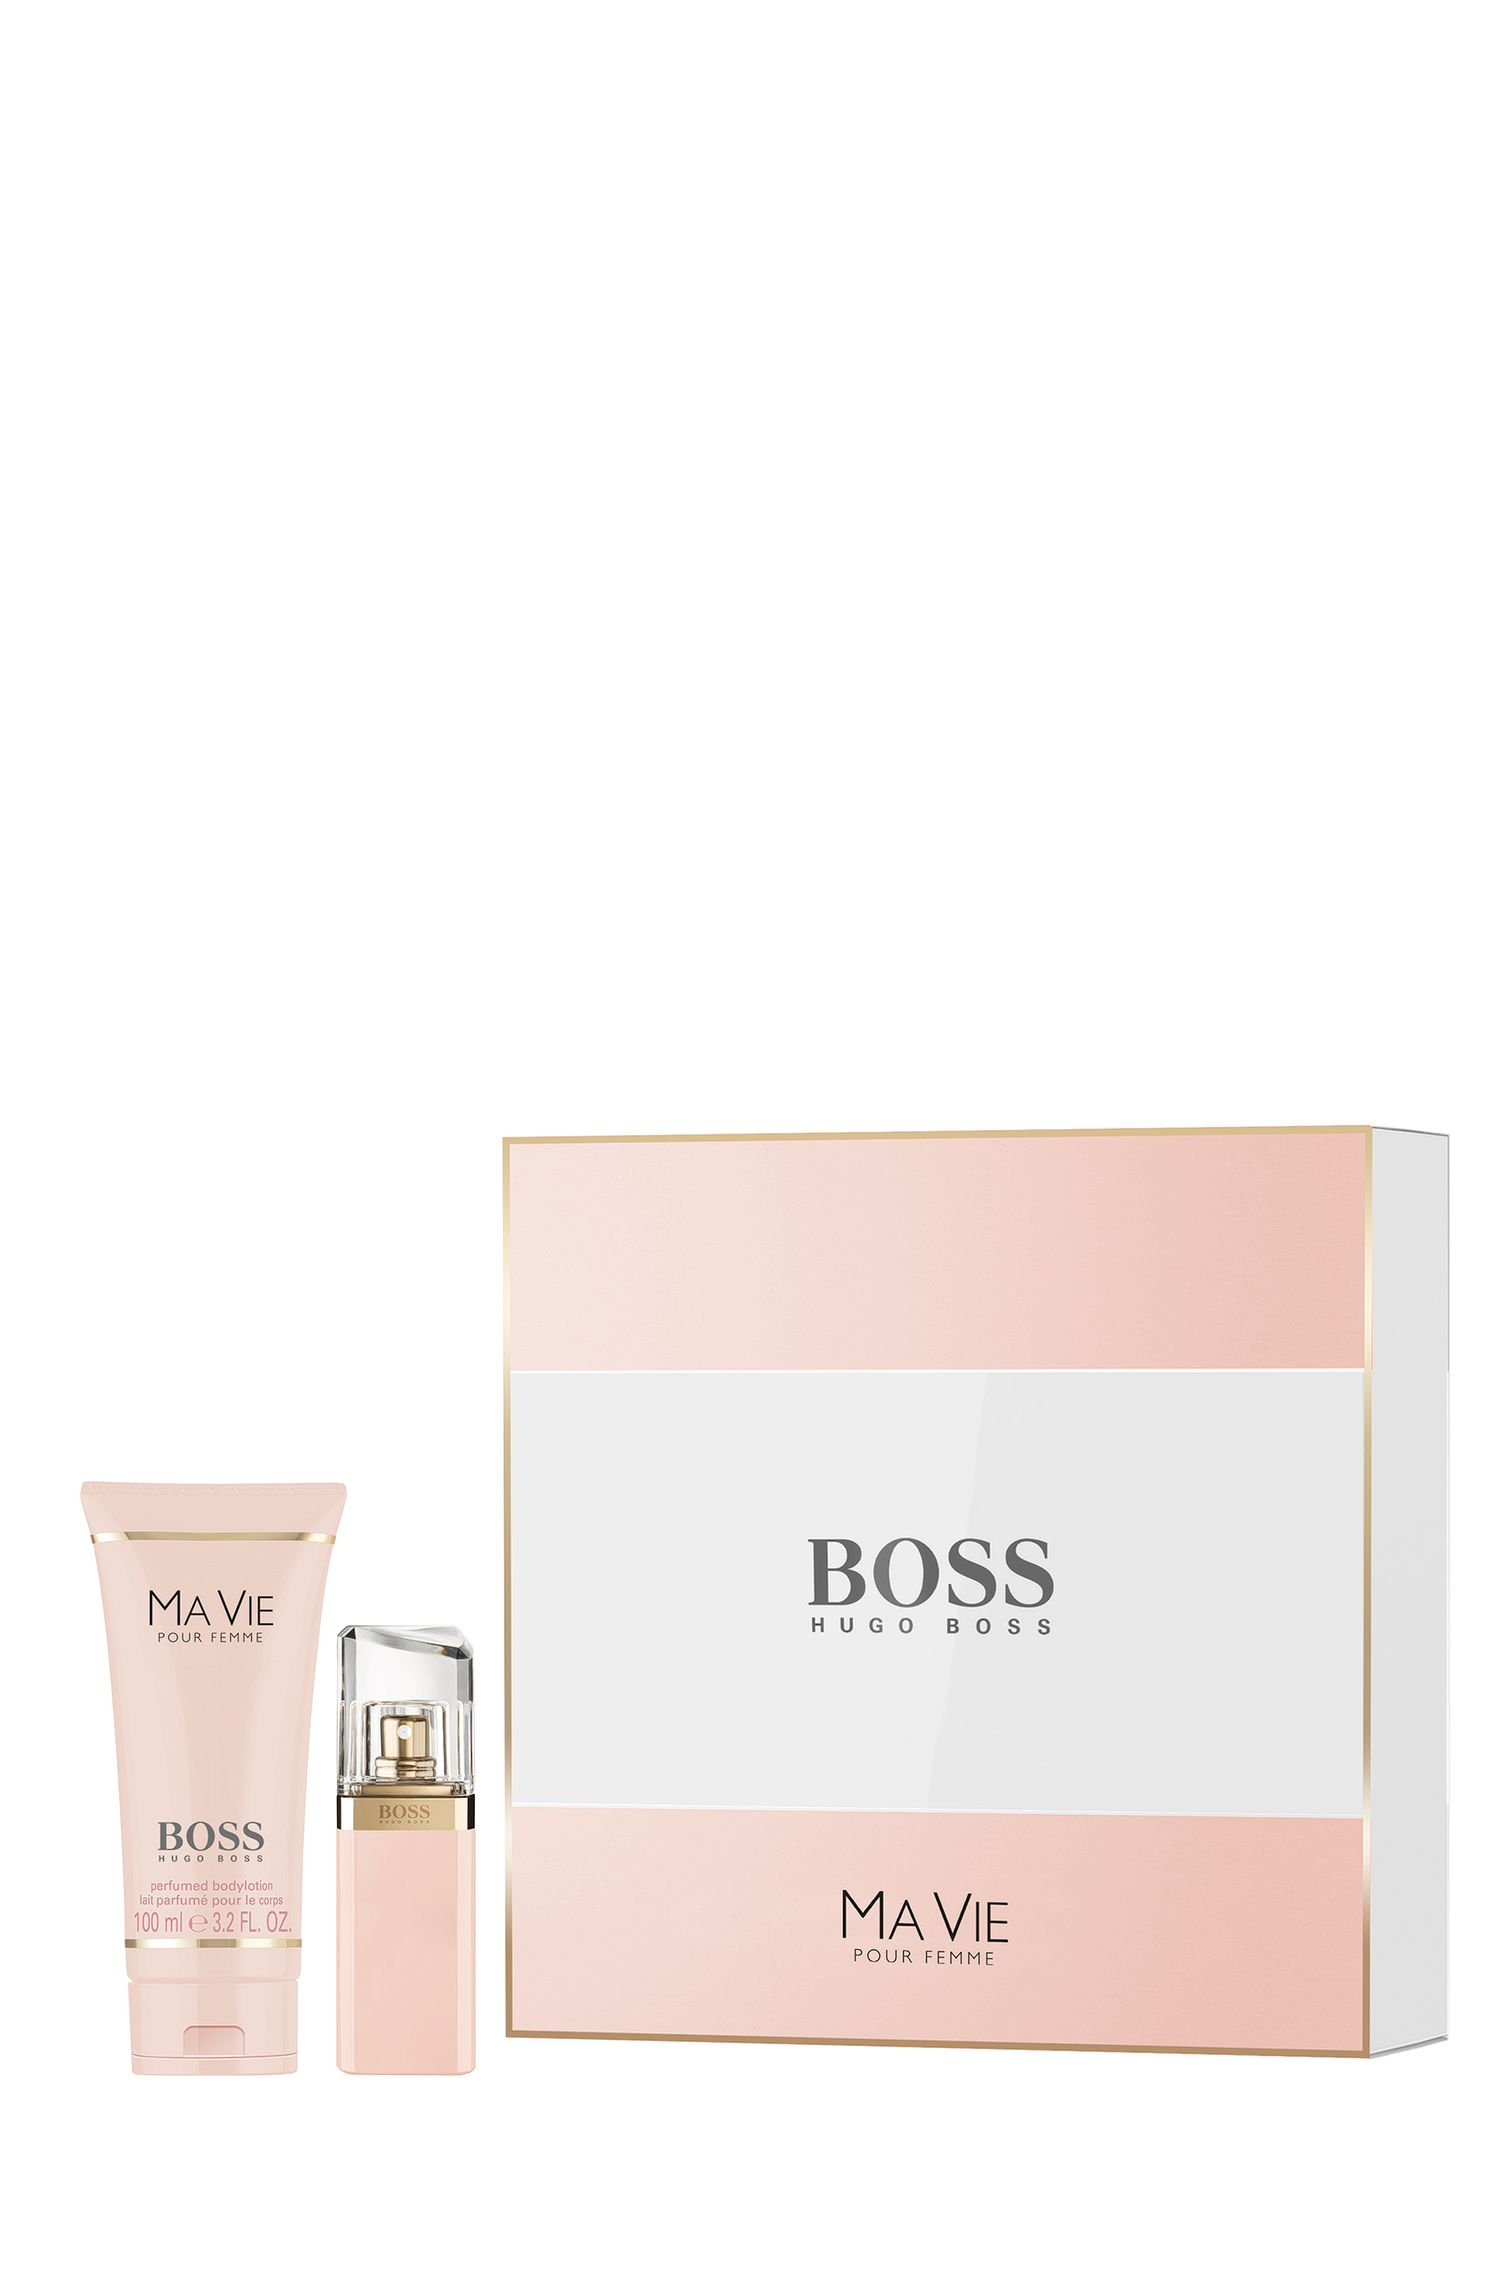 Gift set 'BOSS Ma Vie' with Eau de Parfum 30 ml and Body Lotion